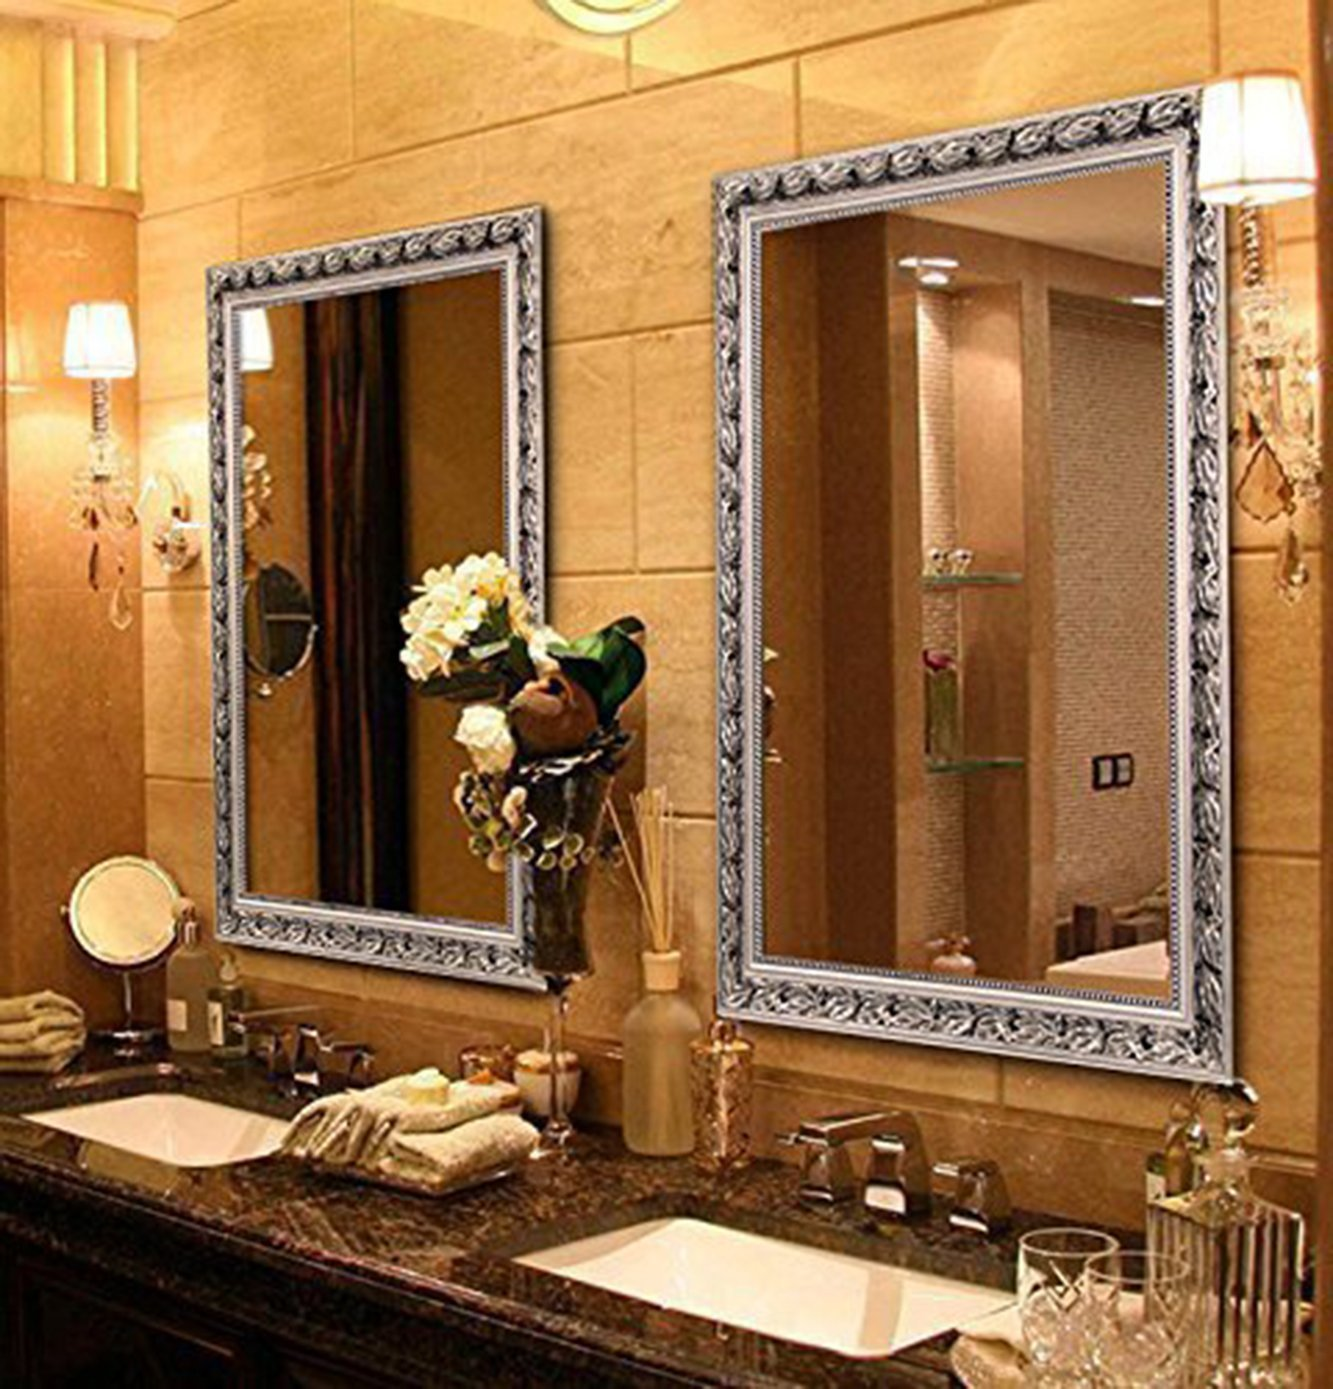 Large Rectangular Bathroom Mirror, Wall-Mounted Wooden Frame Vanity Mirror, Silver (32''x24'')